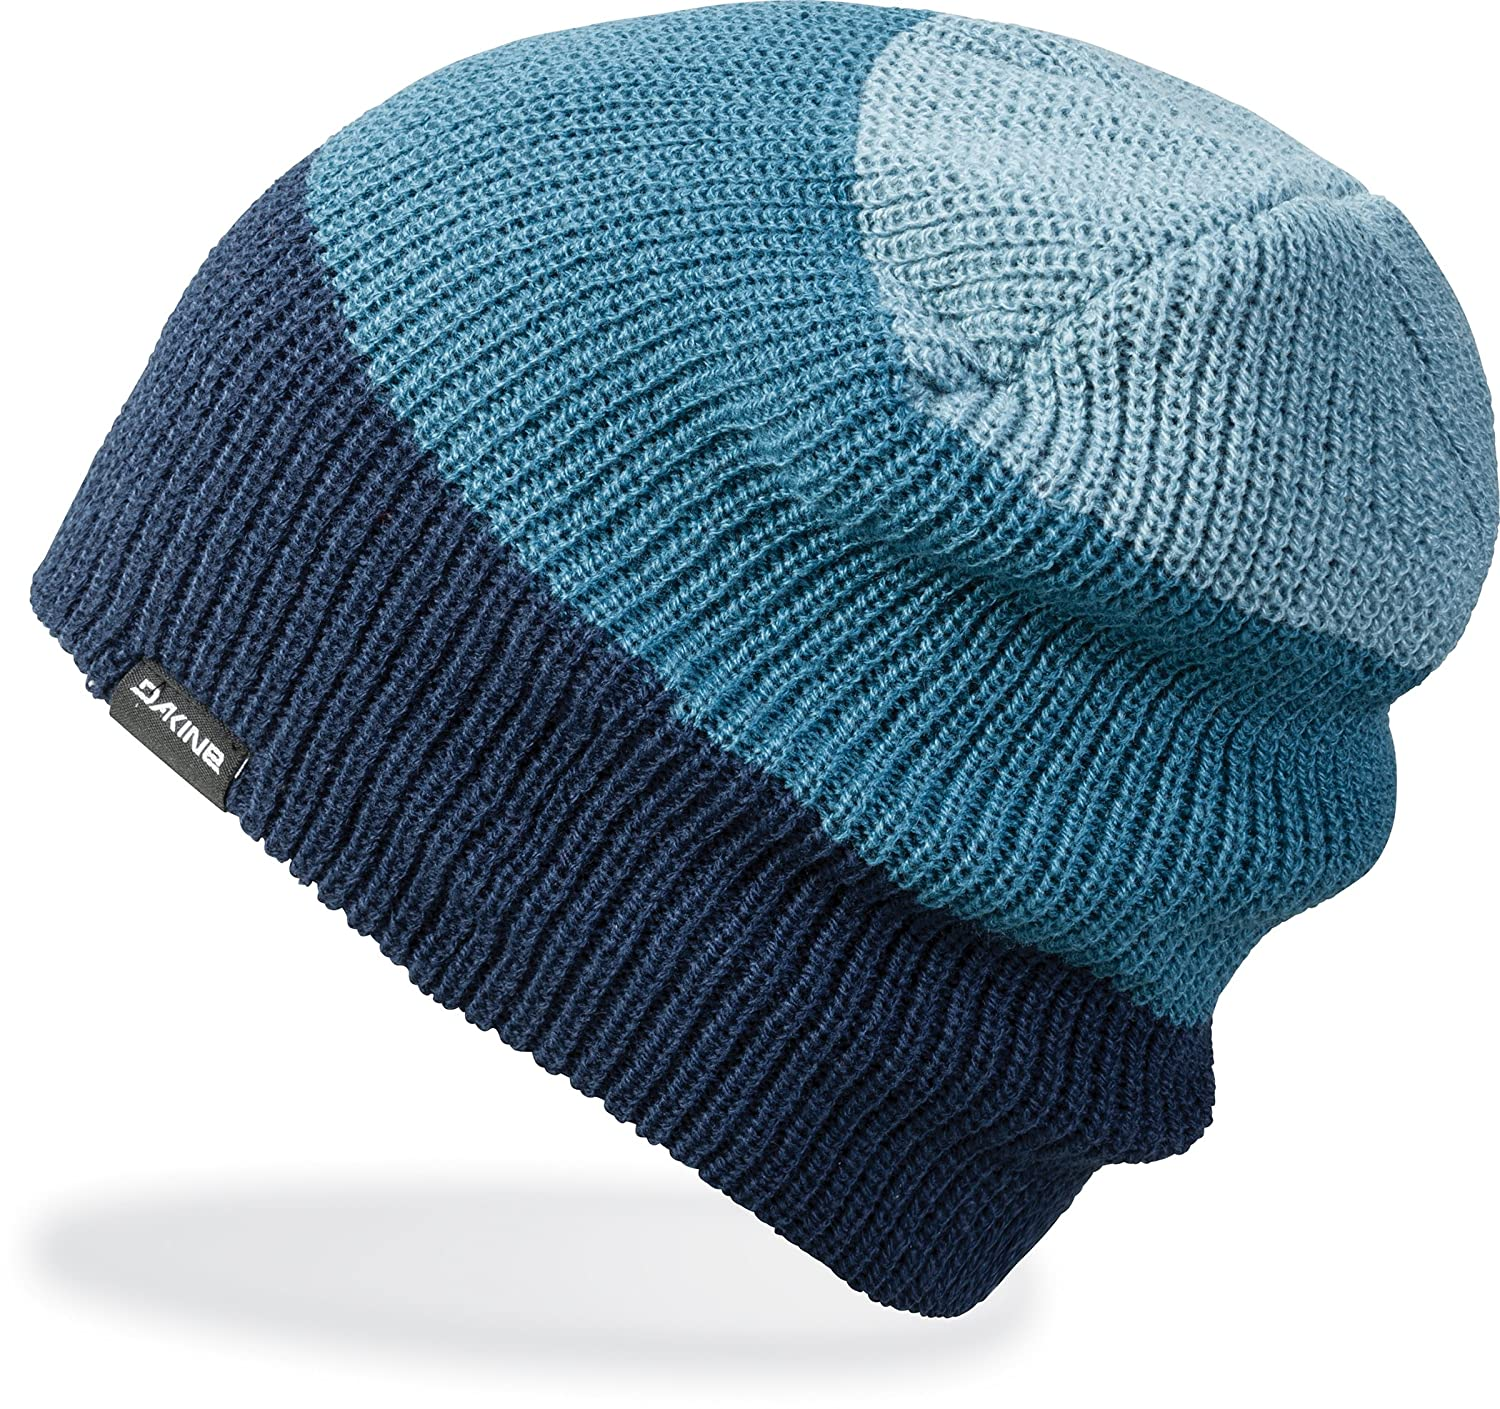 [ダカイン]DAKINE Lester Beanie 帽子 One Size [並行輸入品]  MIDNIGHT/CHILL BLUE B01BX9AAGA